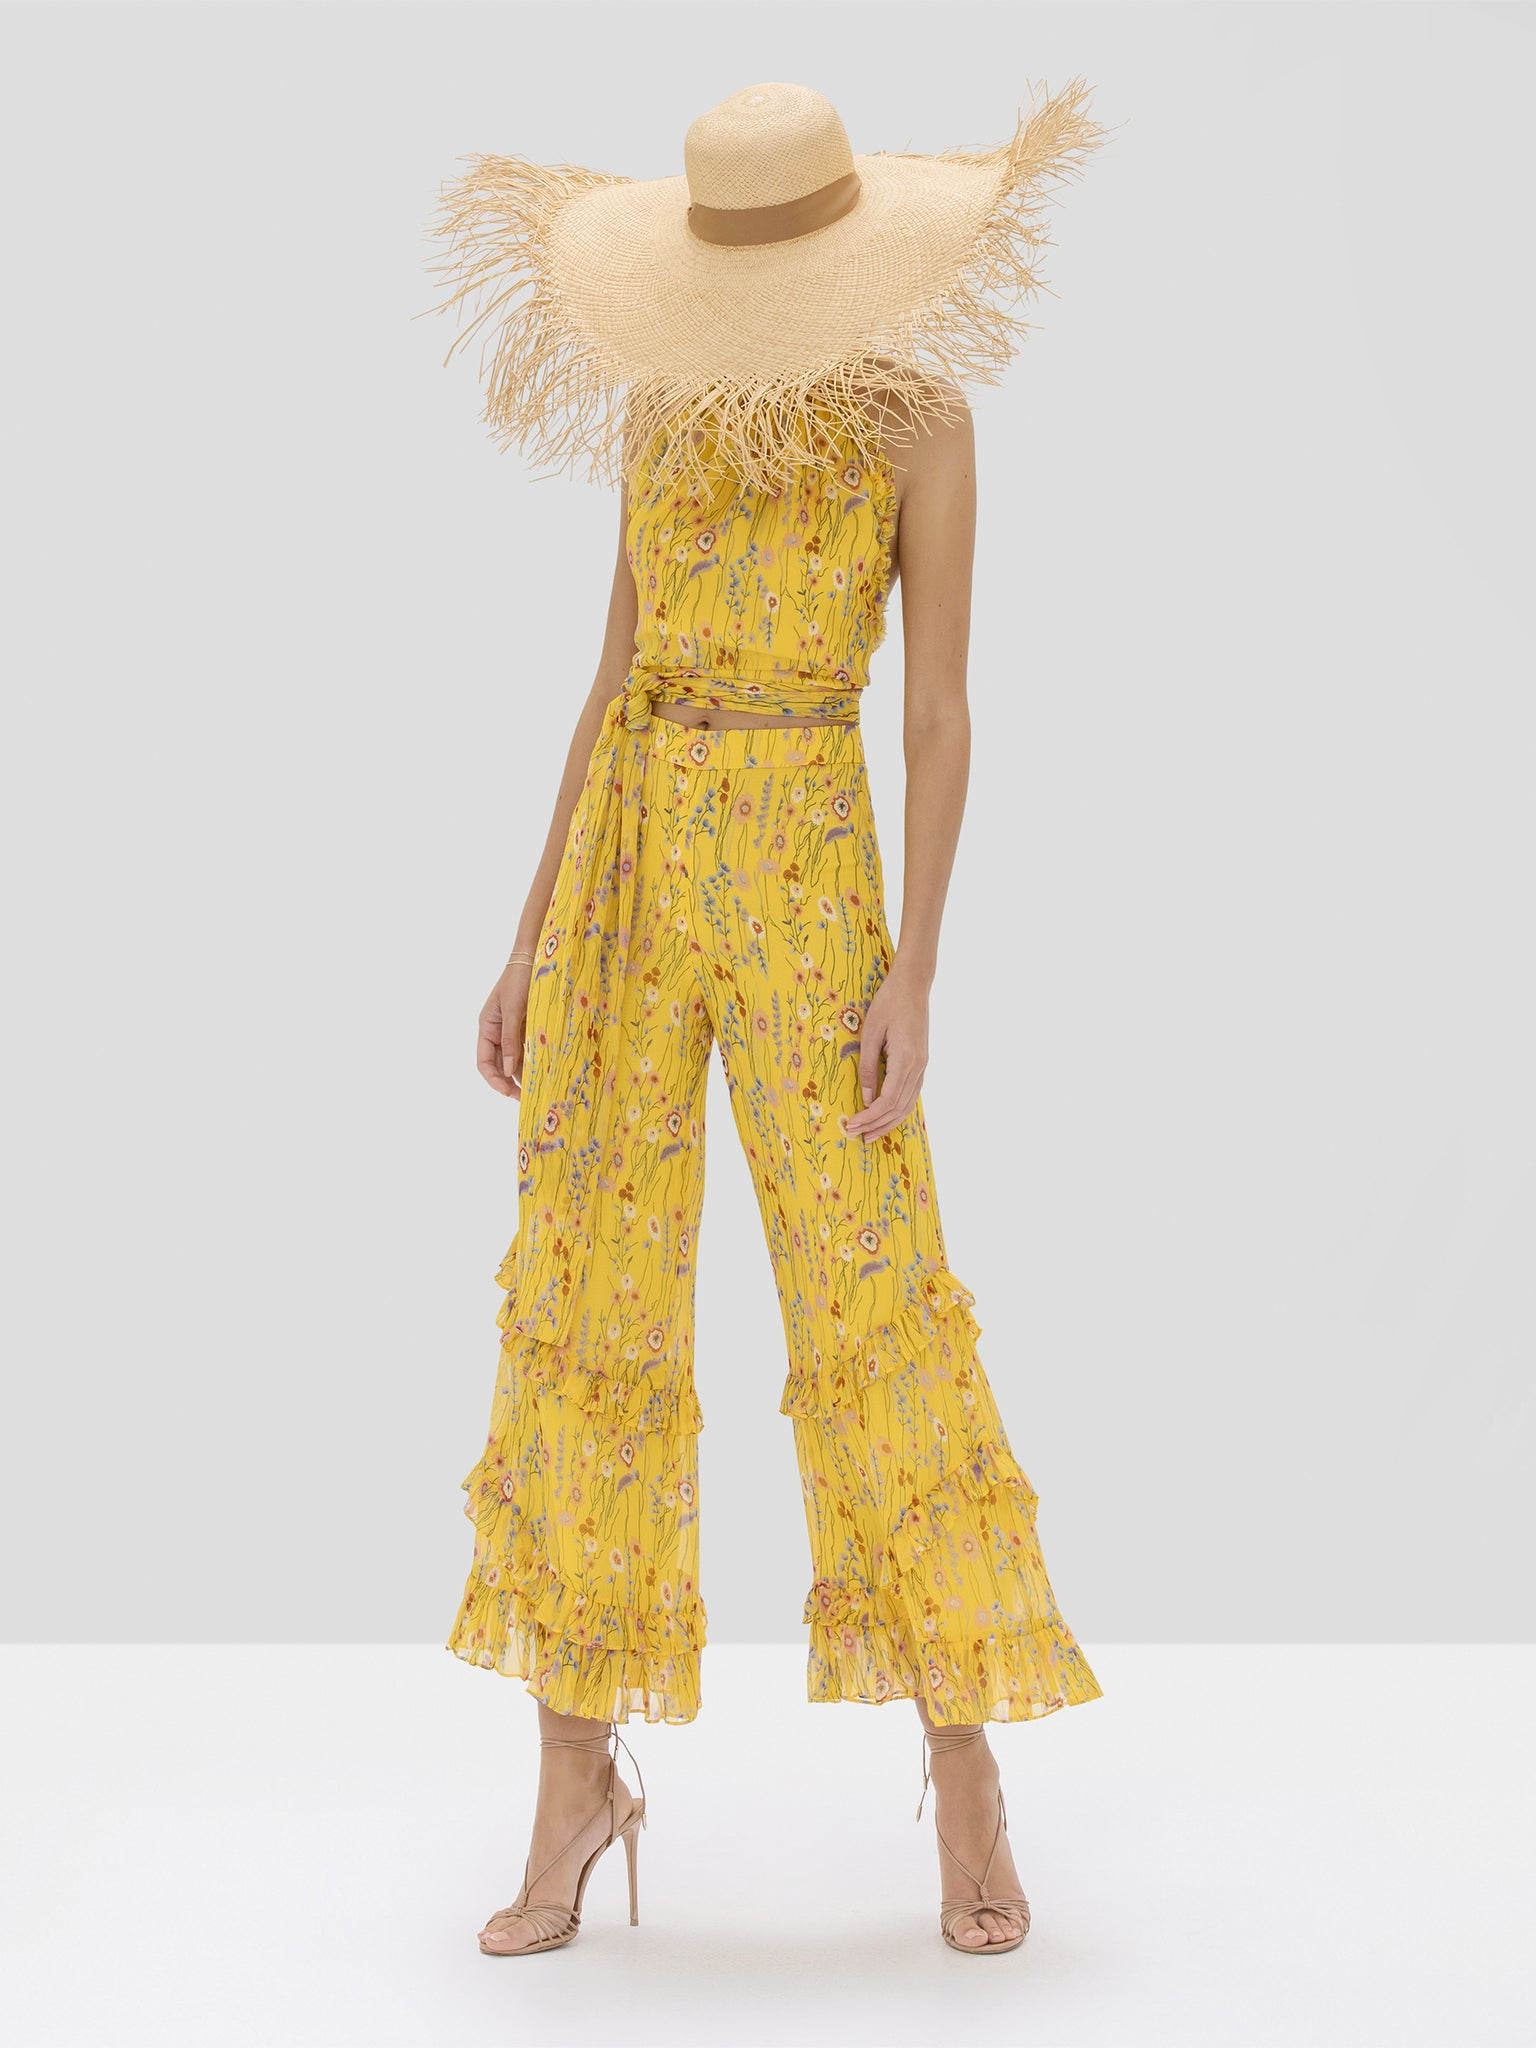 Alexis Balbina Top and Faizel Pant in Sunrise Bouquet from Spring Summer 2020